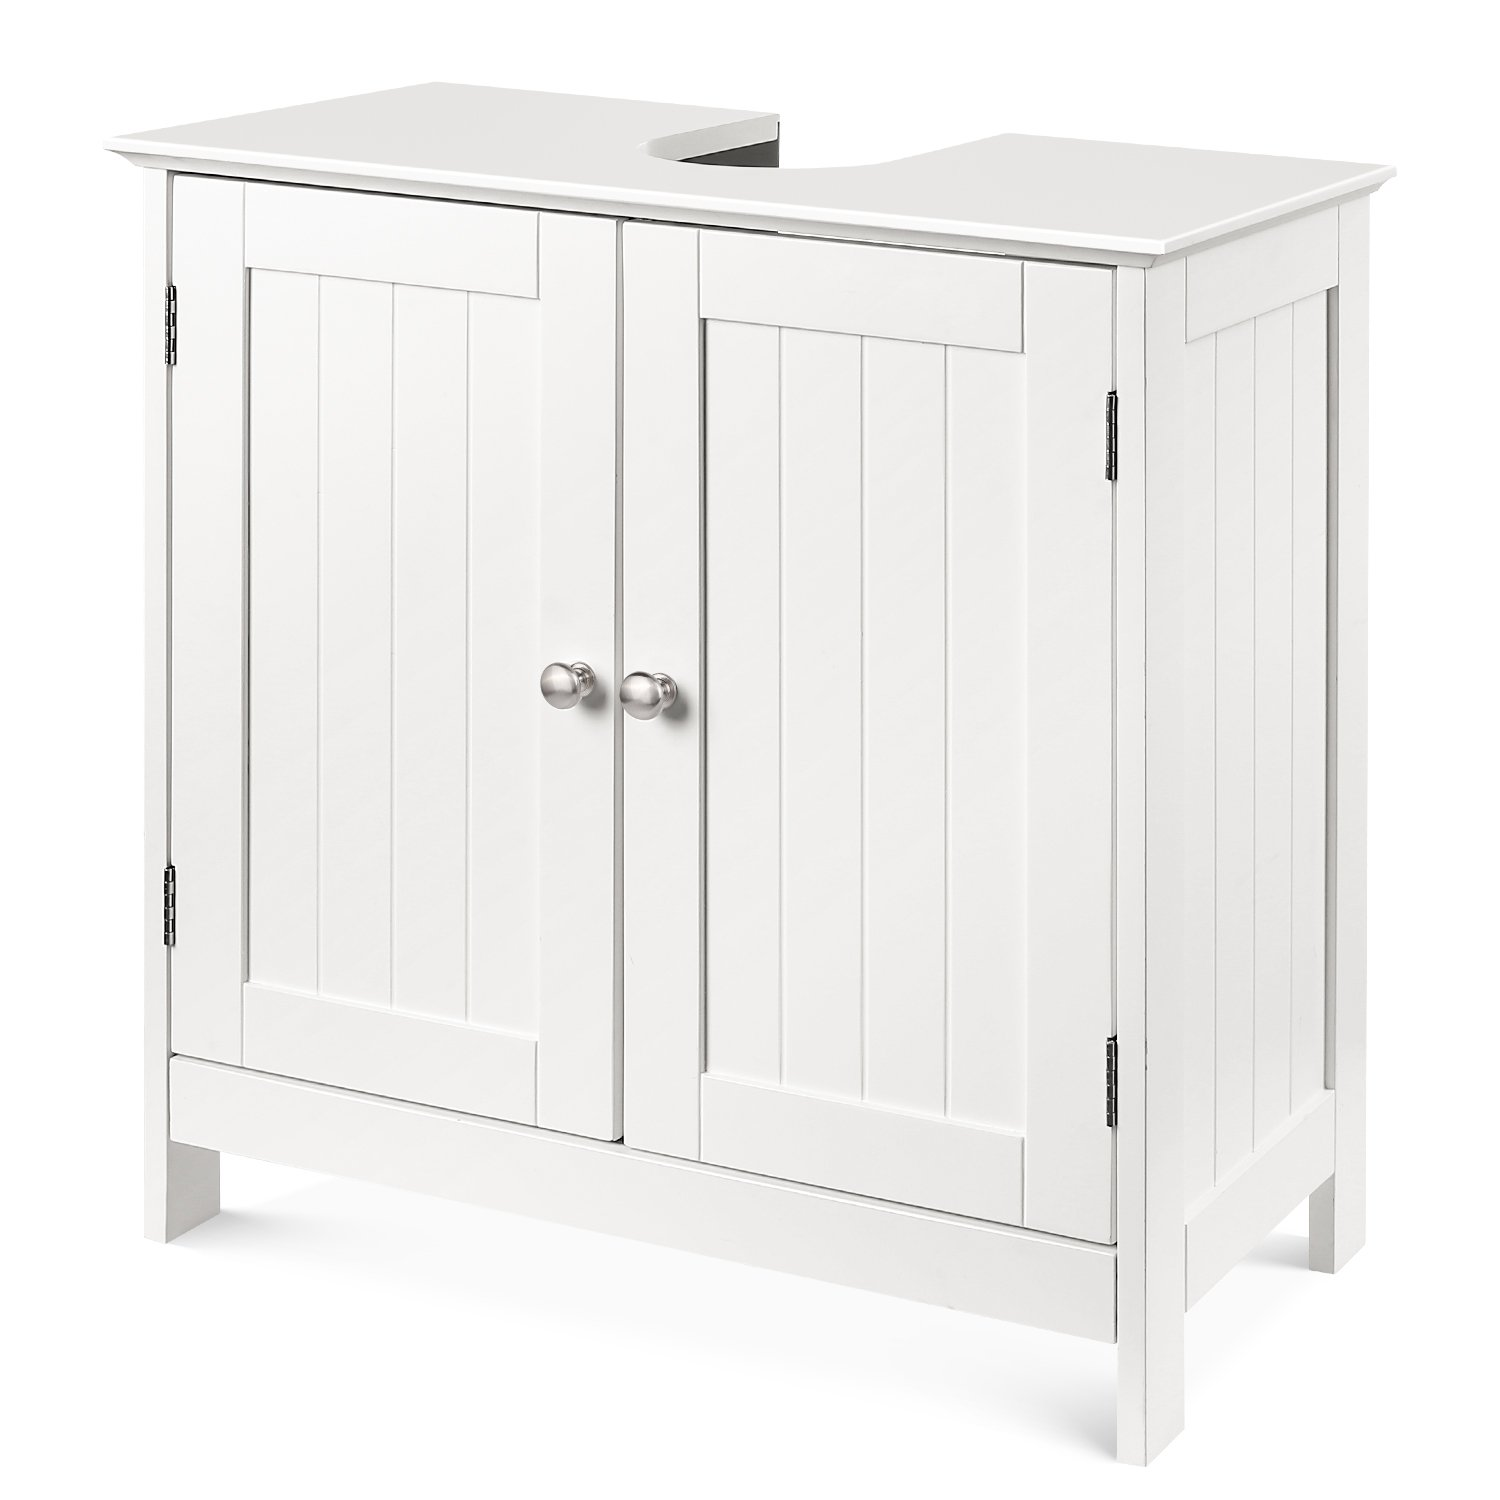 Homfa bathroom under sink vanity cabinet multipurpose - Bathroom vanity under sink organizer ...